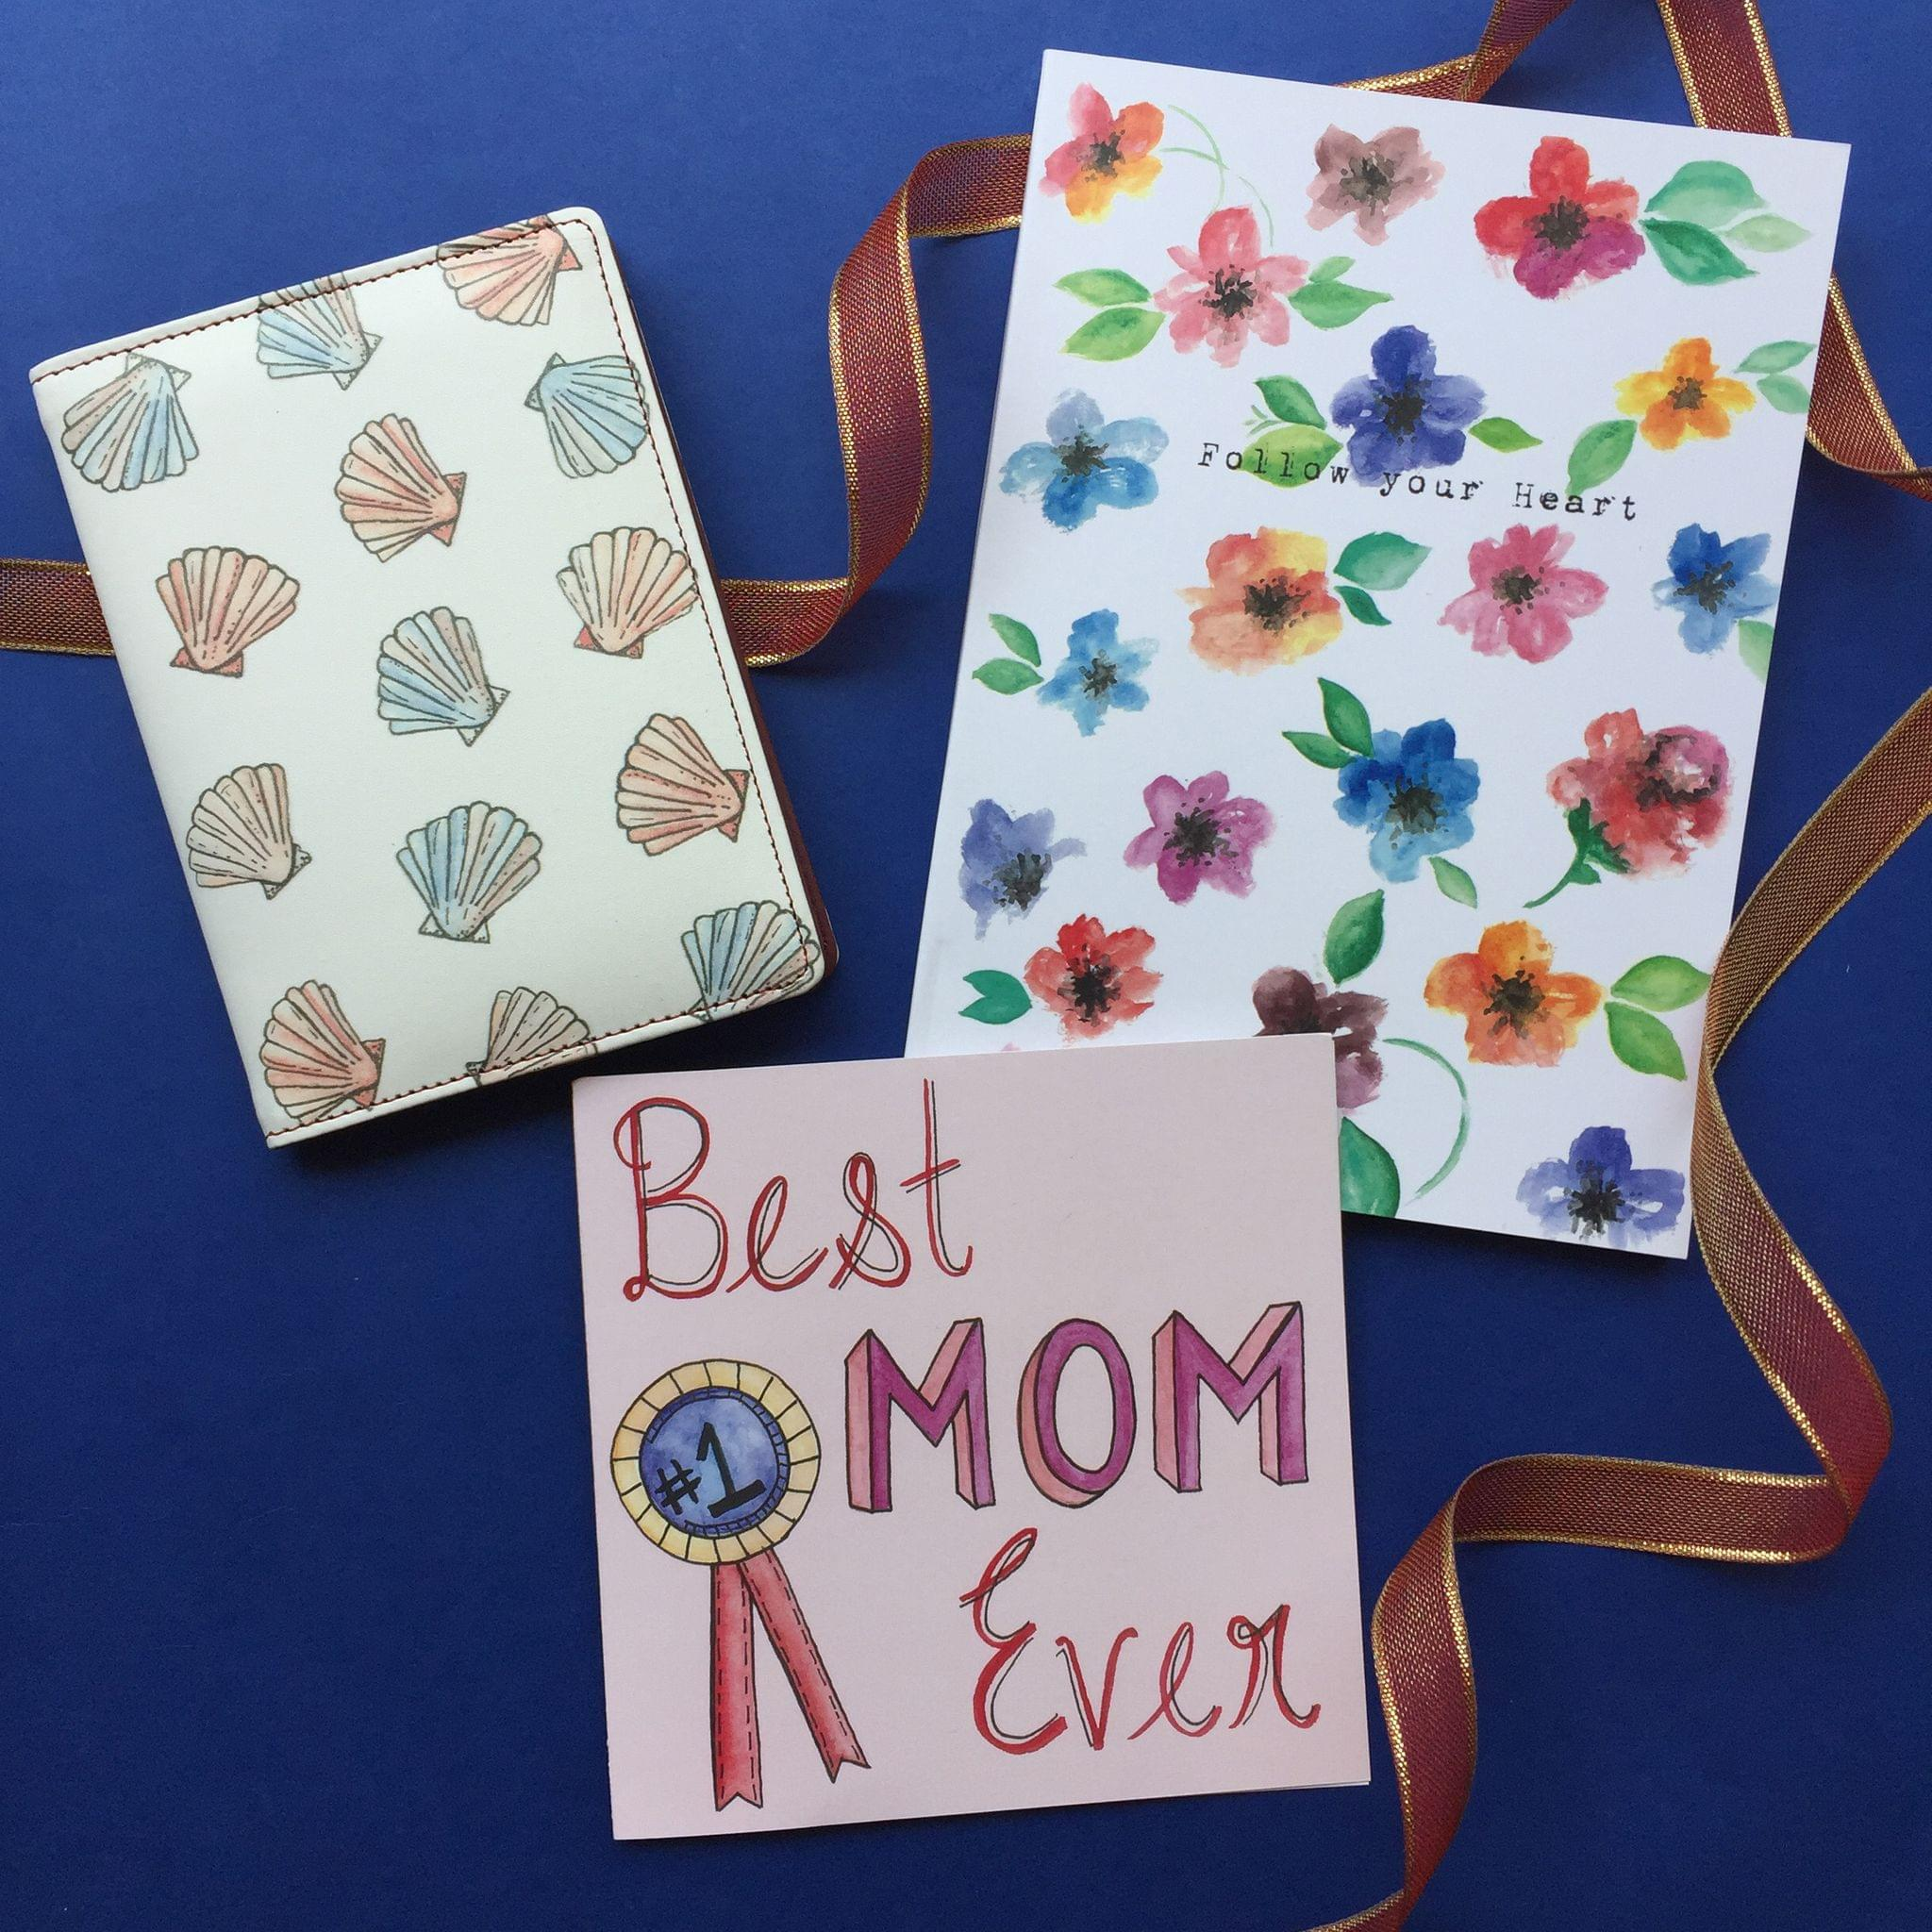 For the Globetrotting Mom